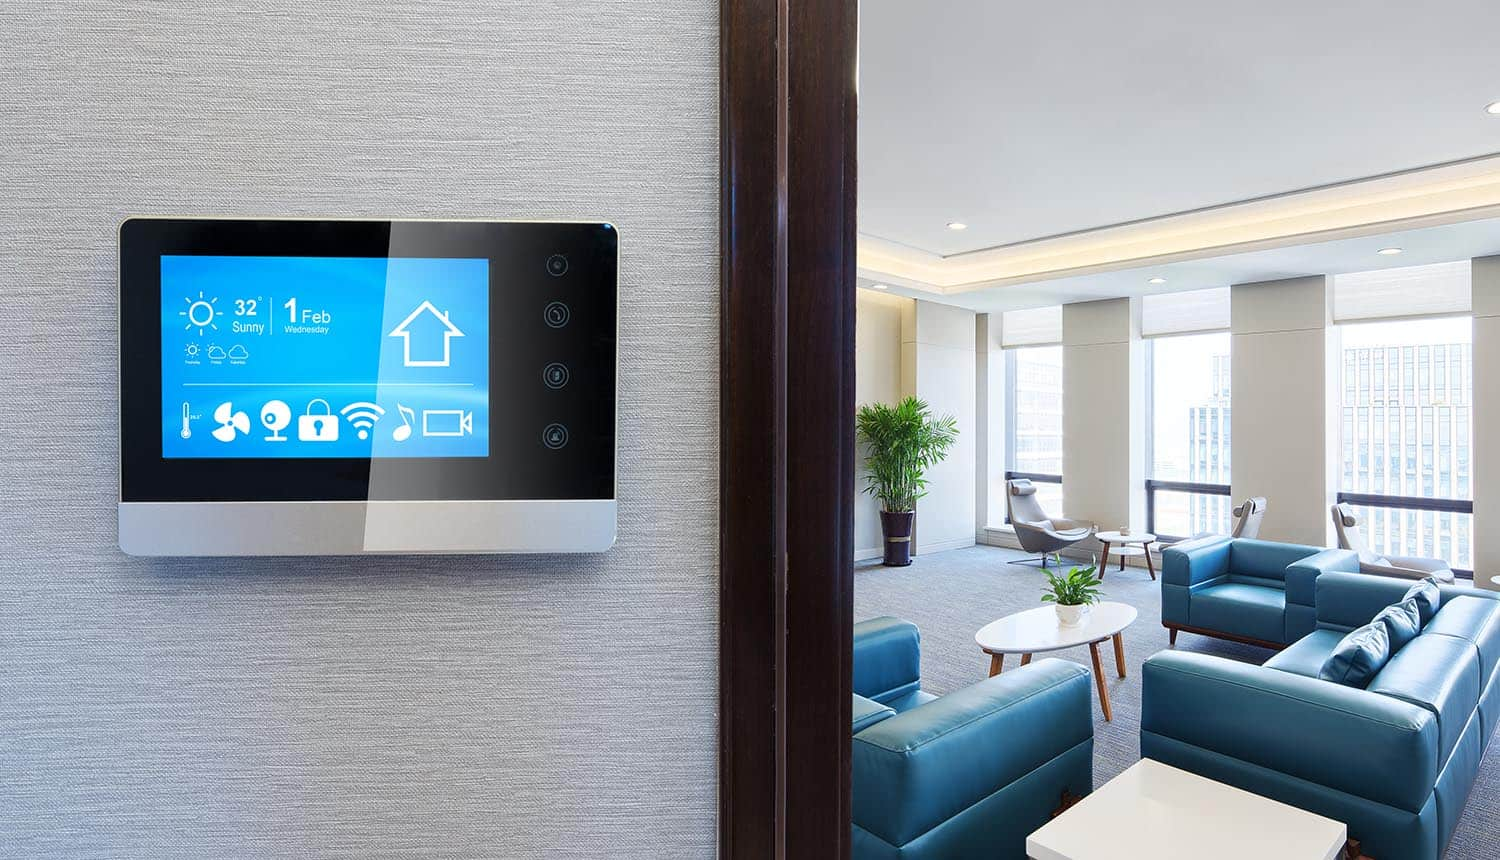 Screen with smart home apps on wall in modern living room showing critical vulnerabilities affecting IoT security